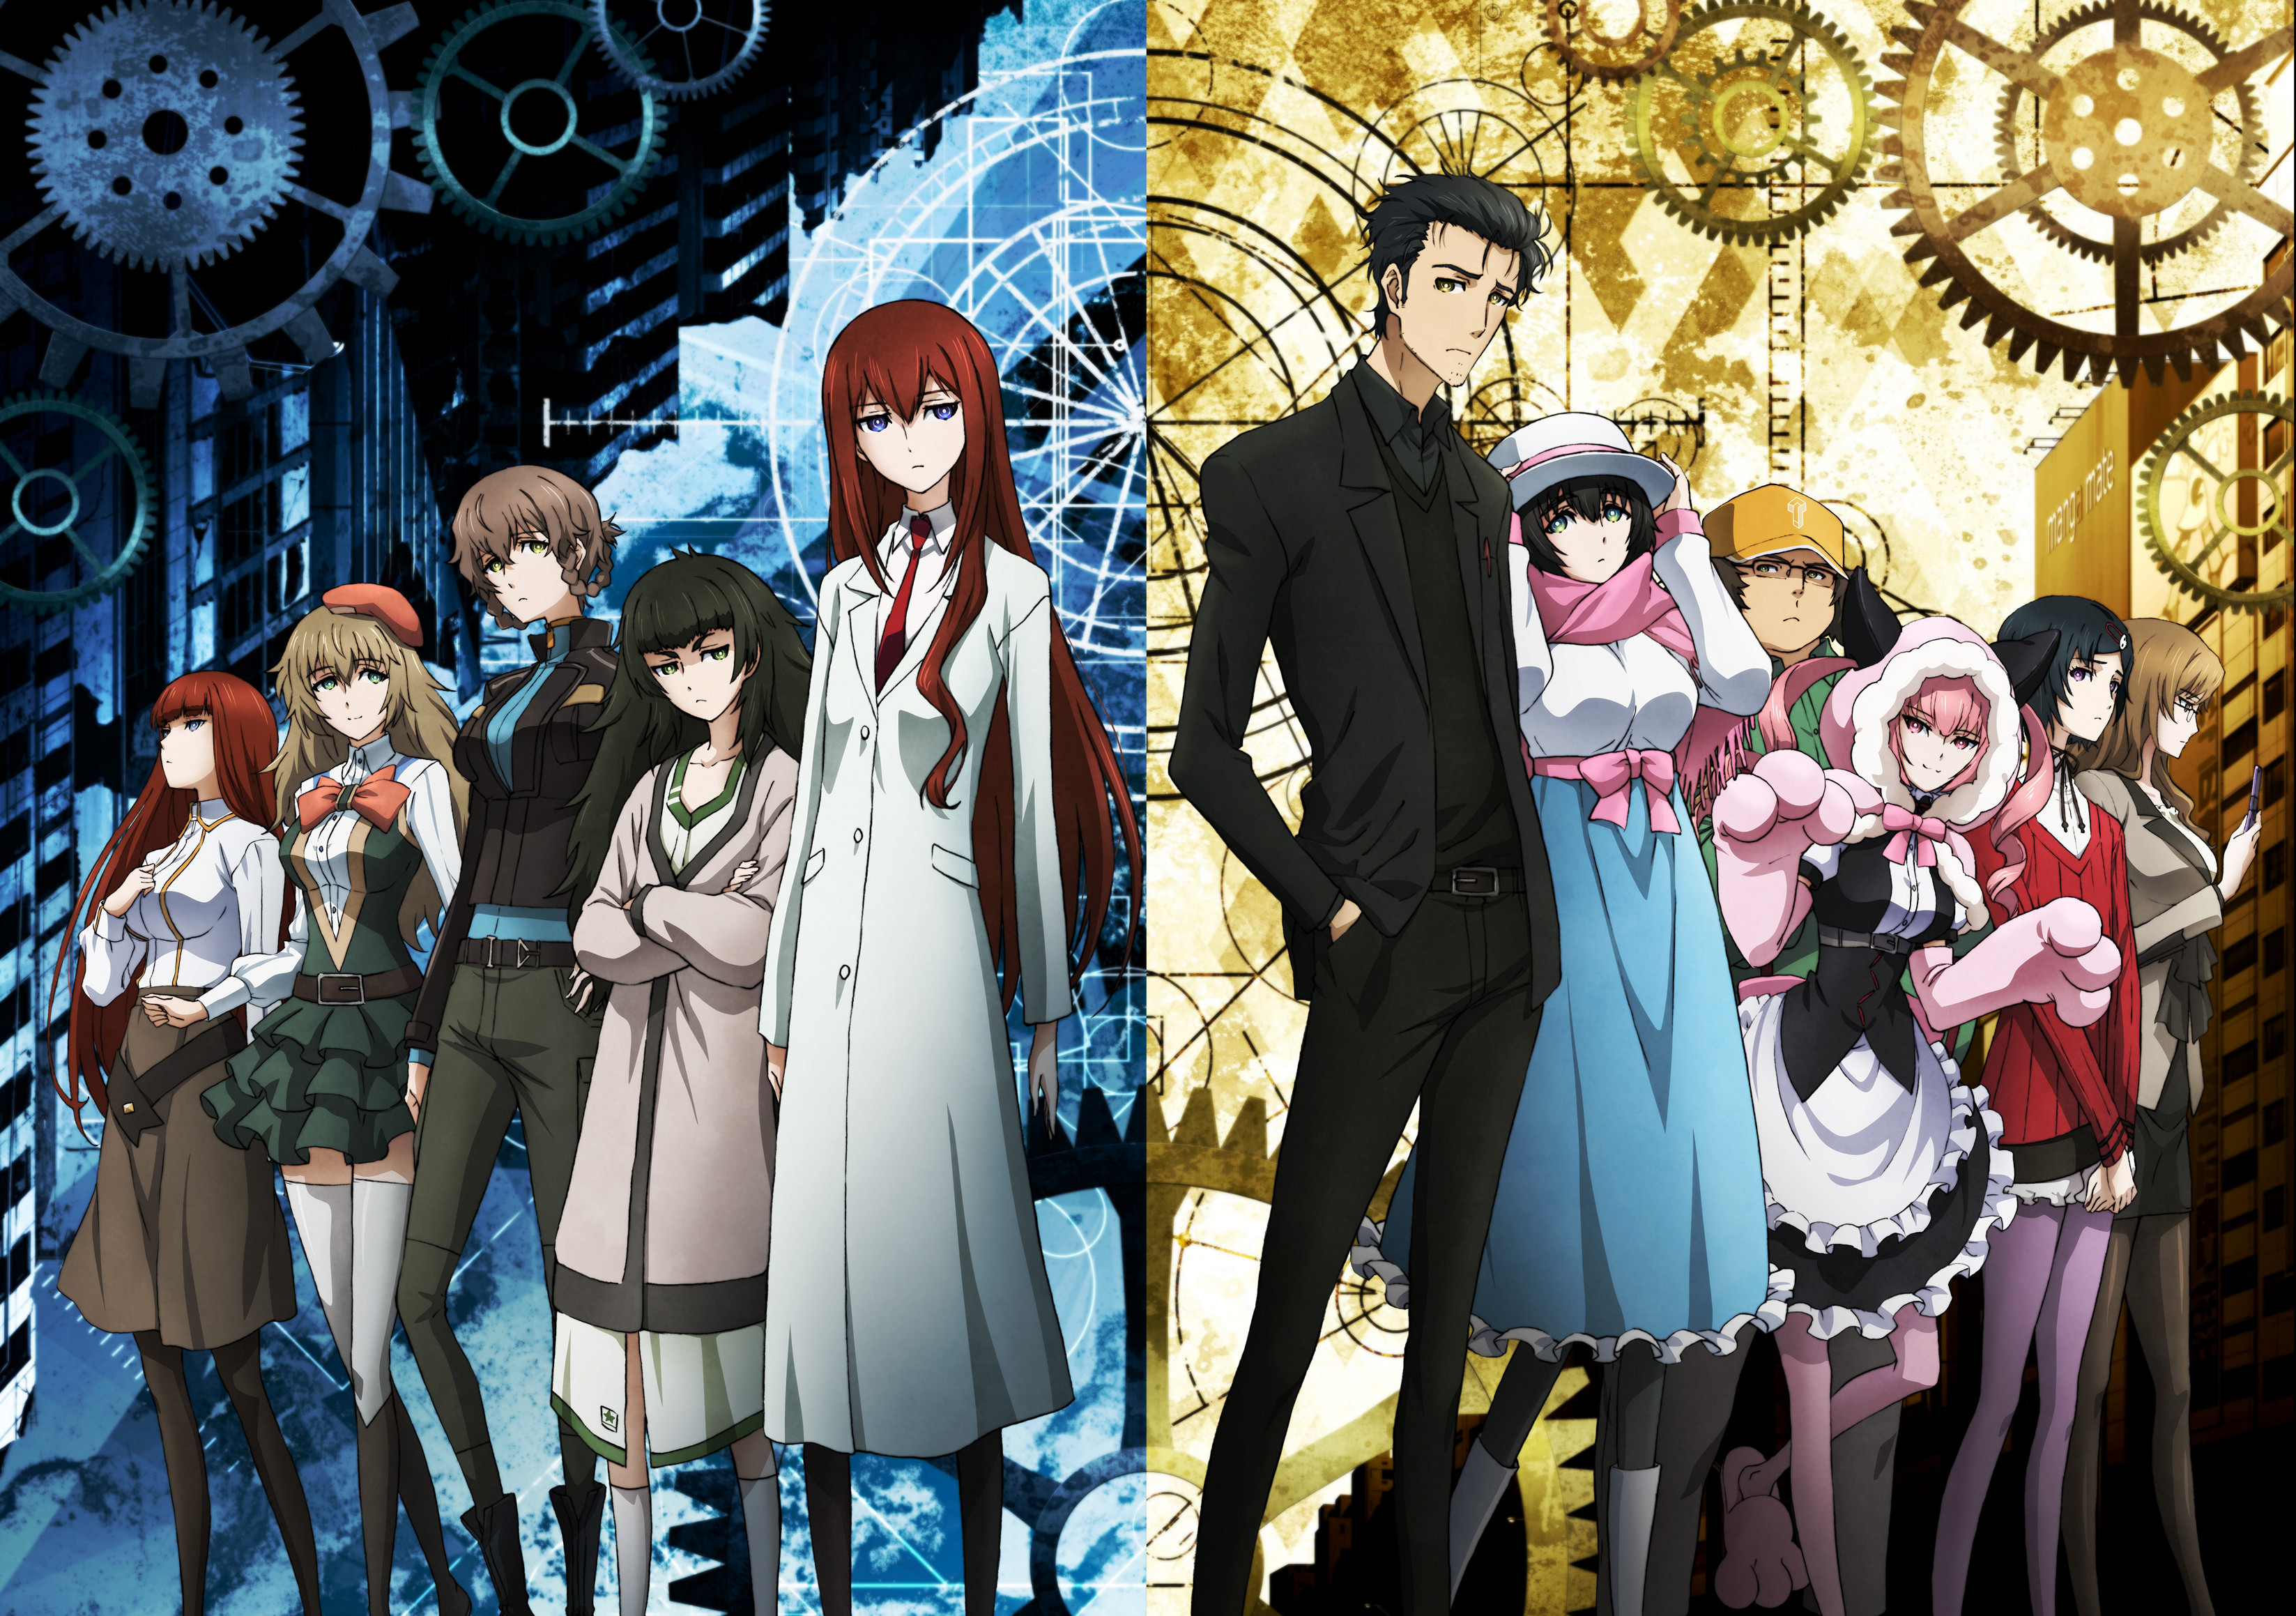 Anime Spotlight - STEINS;GATE 0 - Anime News Network